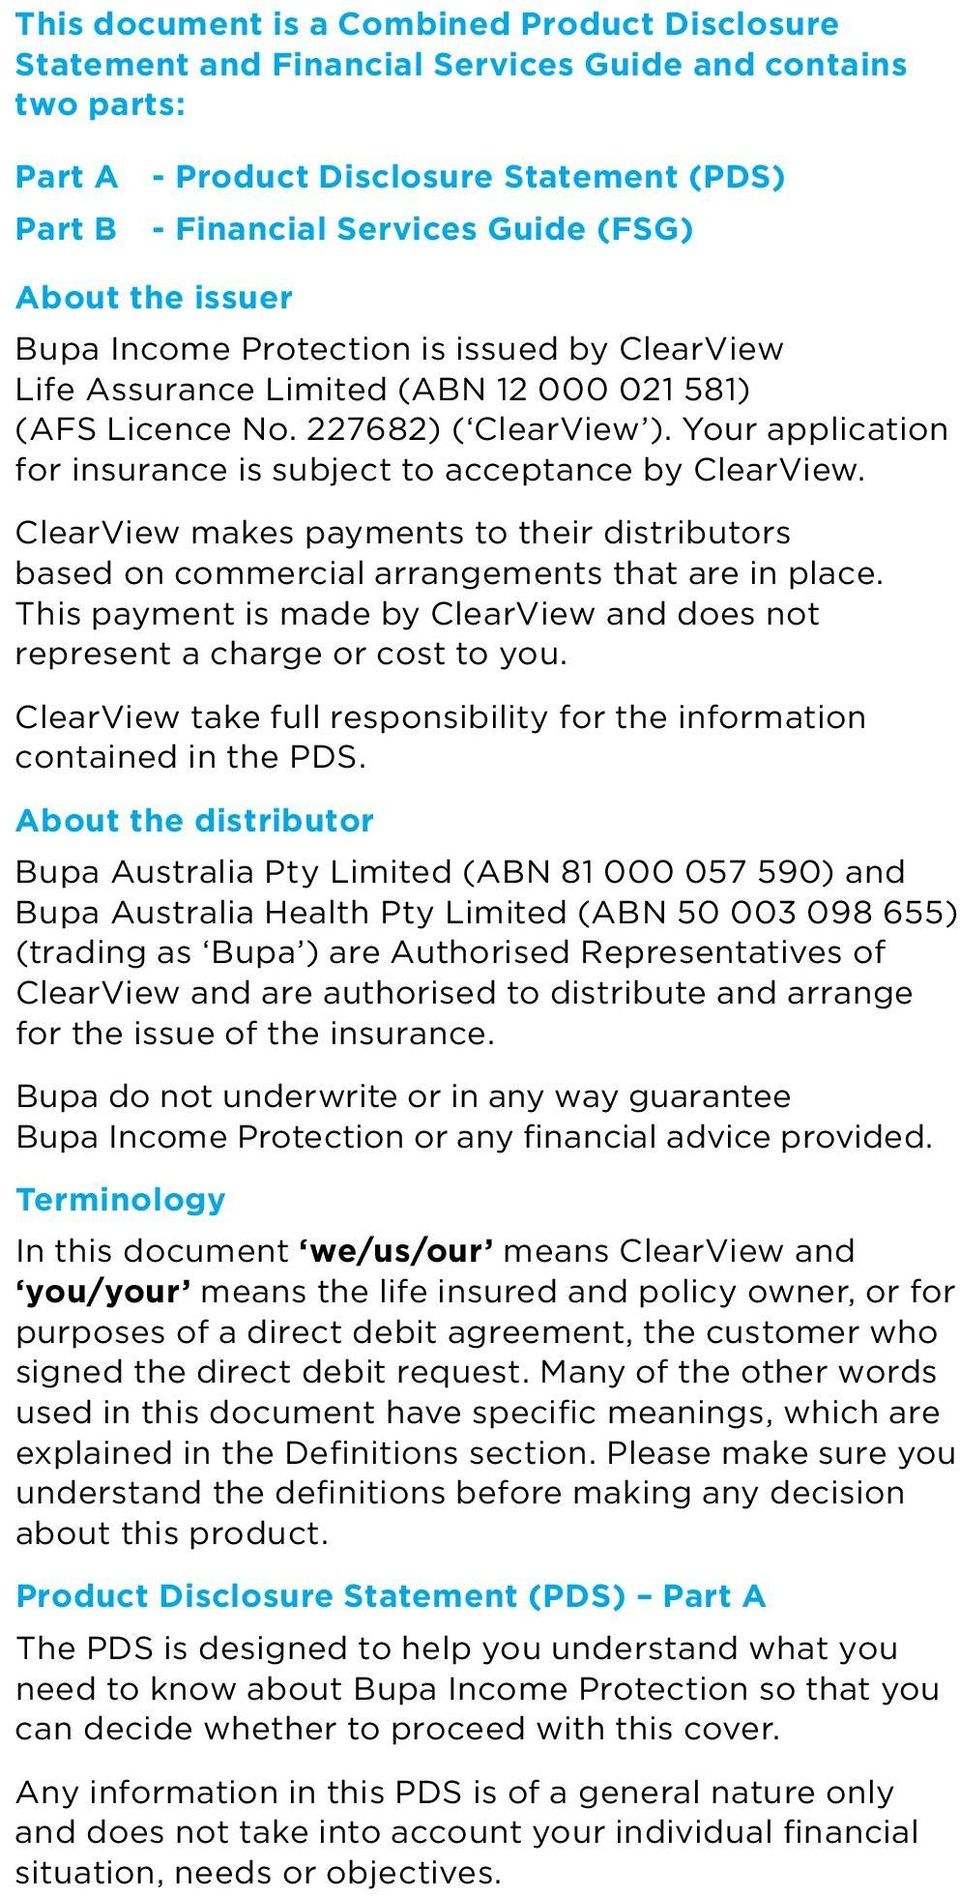 Your application for insurance is subject to acceptance by ClearView. ClearView makes payments to their distributors based on commercial arrangements that are in place.